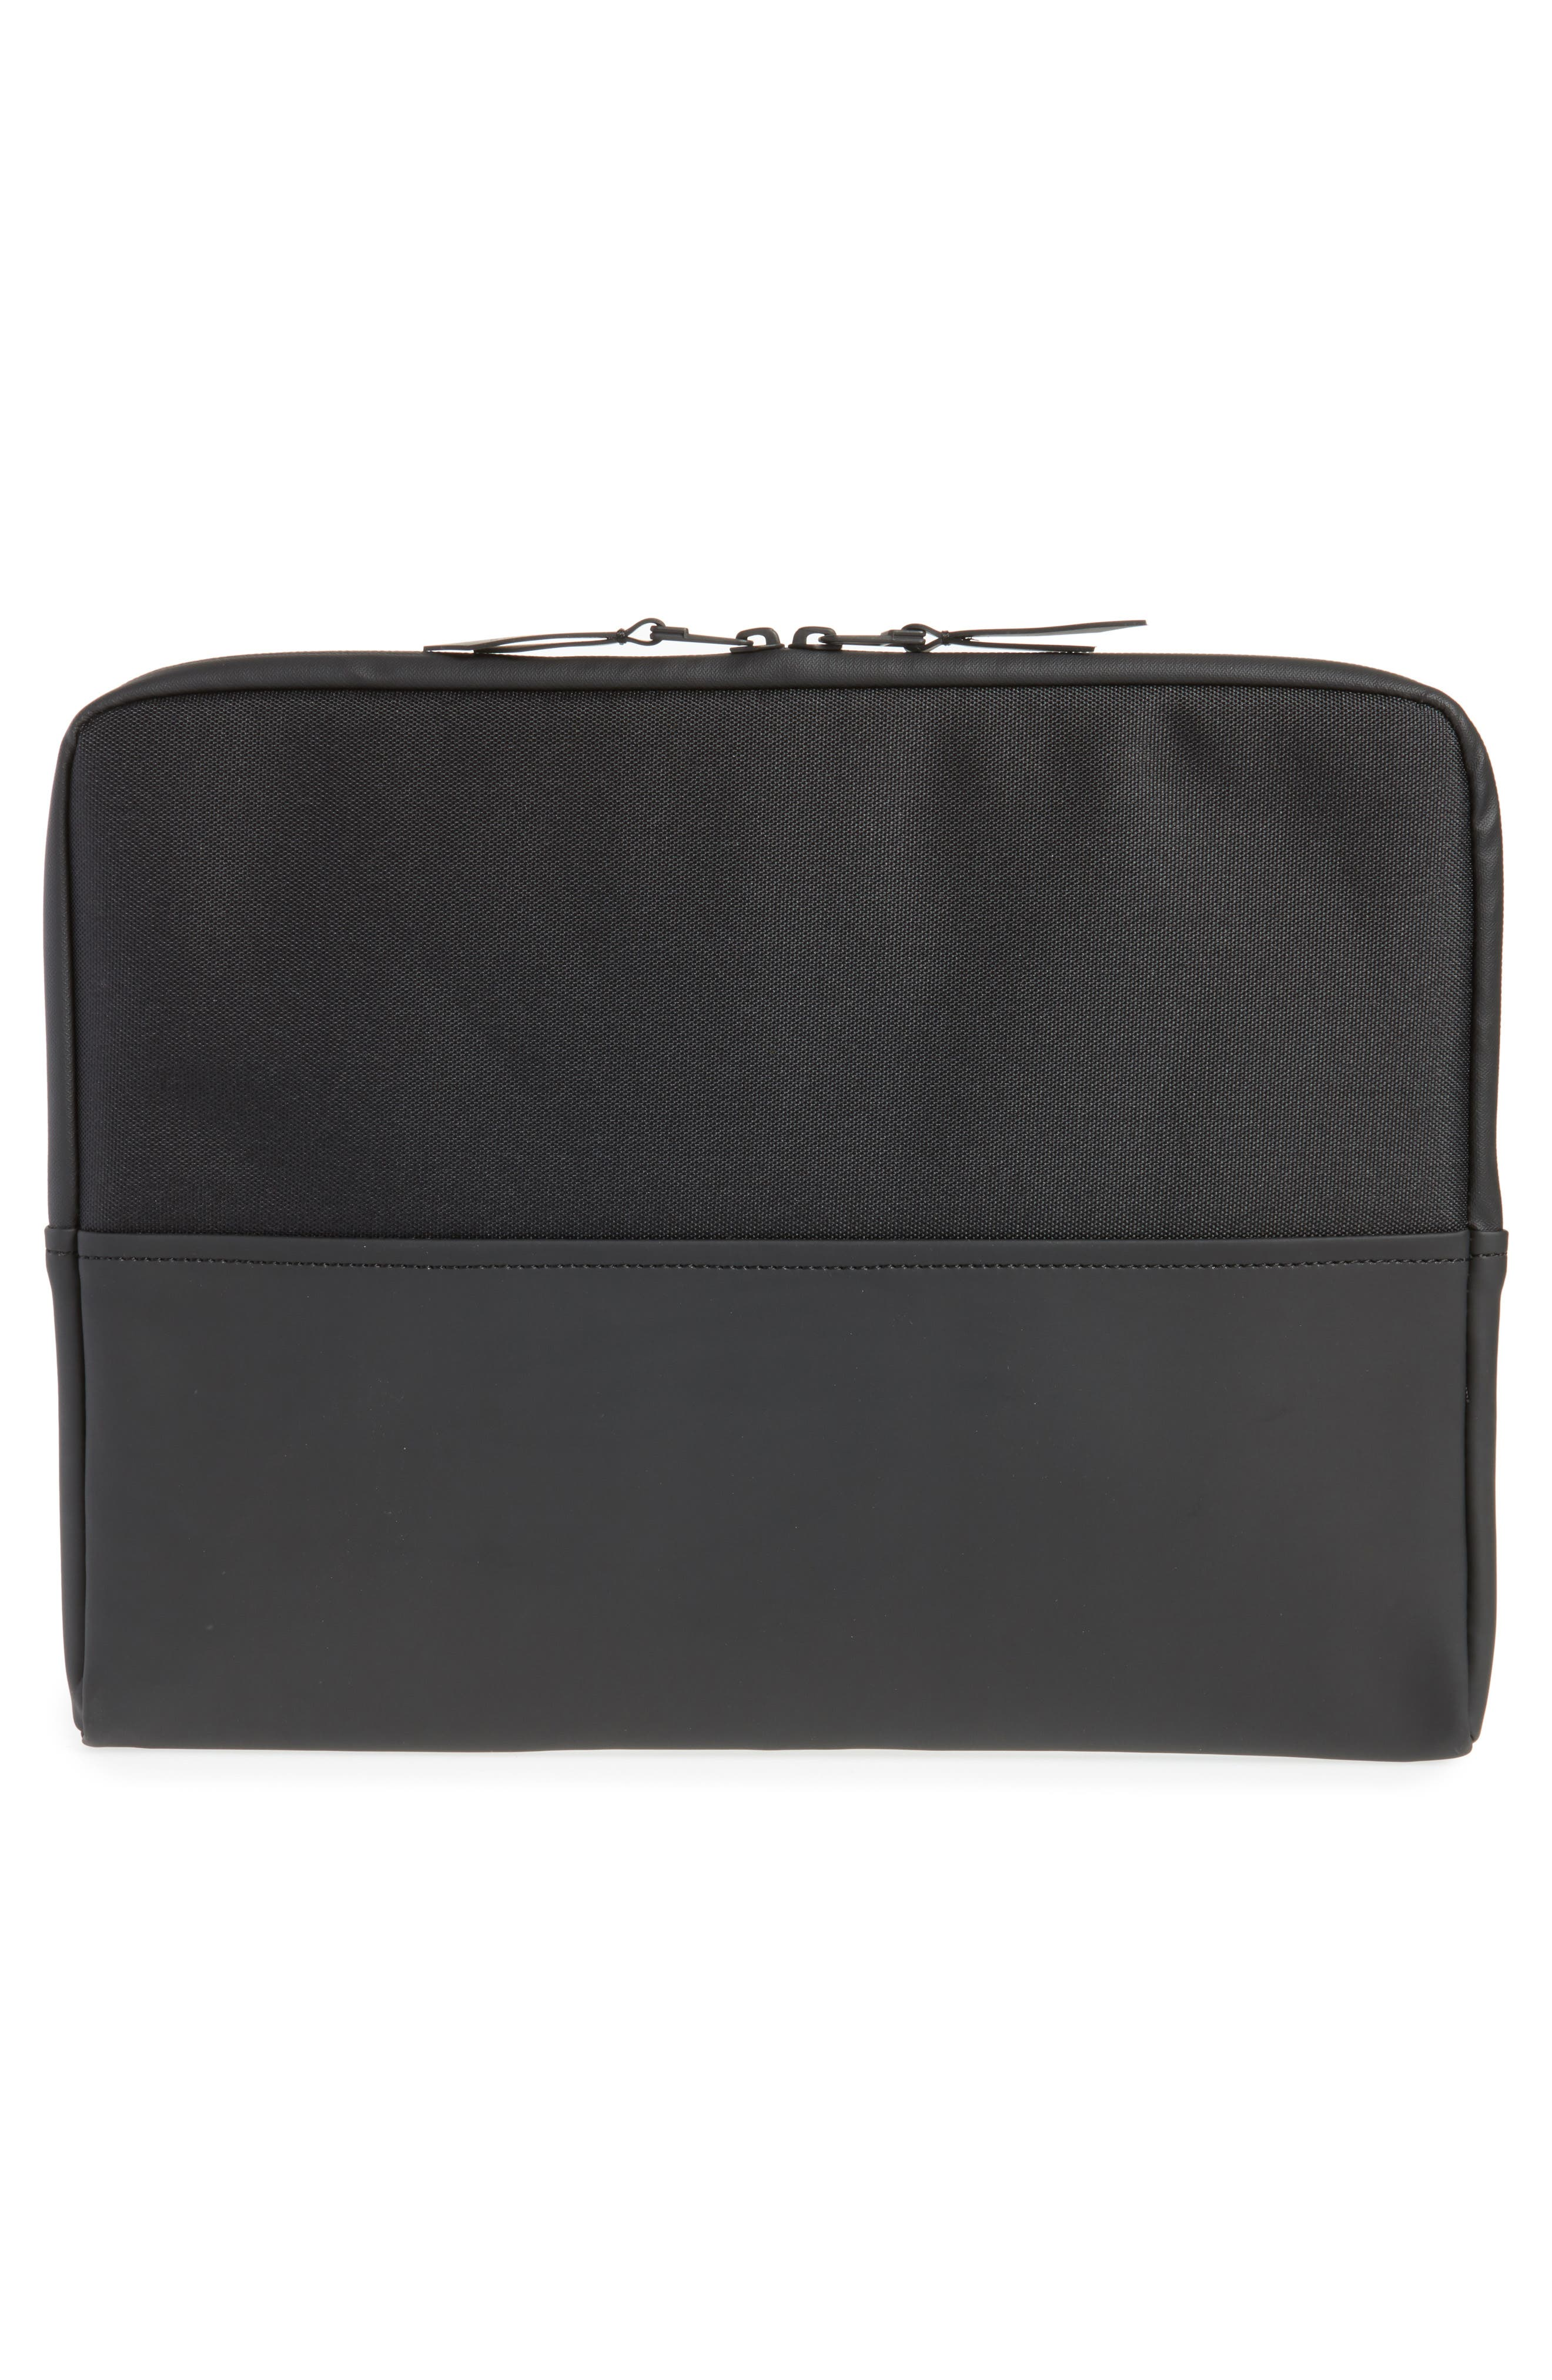 RAINS,                             13-Inch Laptop Sleeve,                             Alternate thumbnail 2, color,                             BLACK